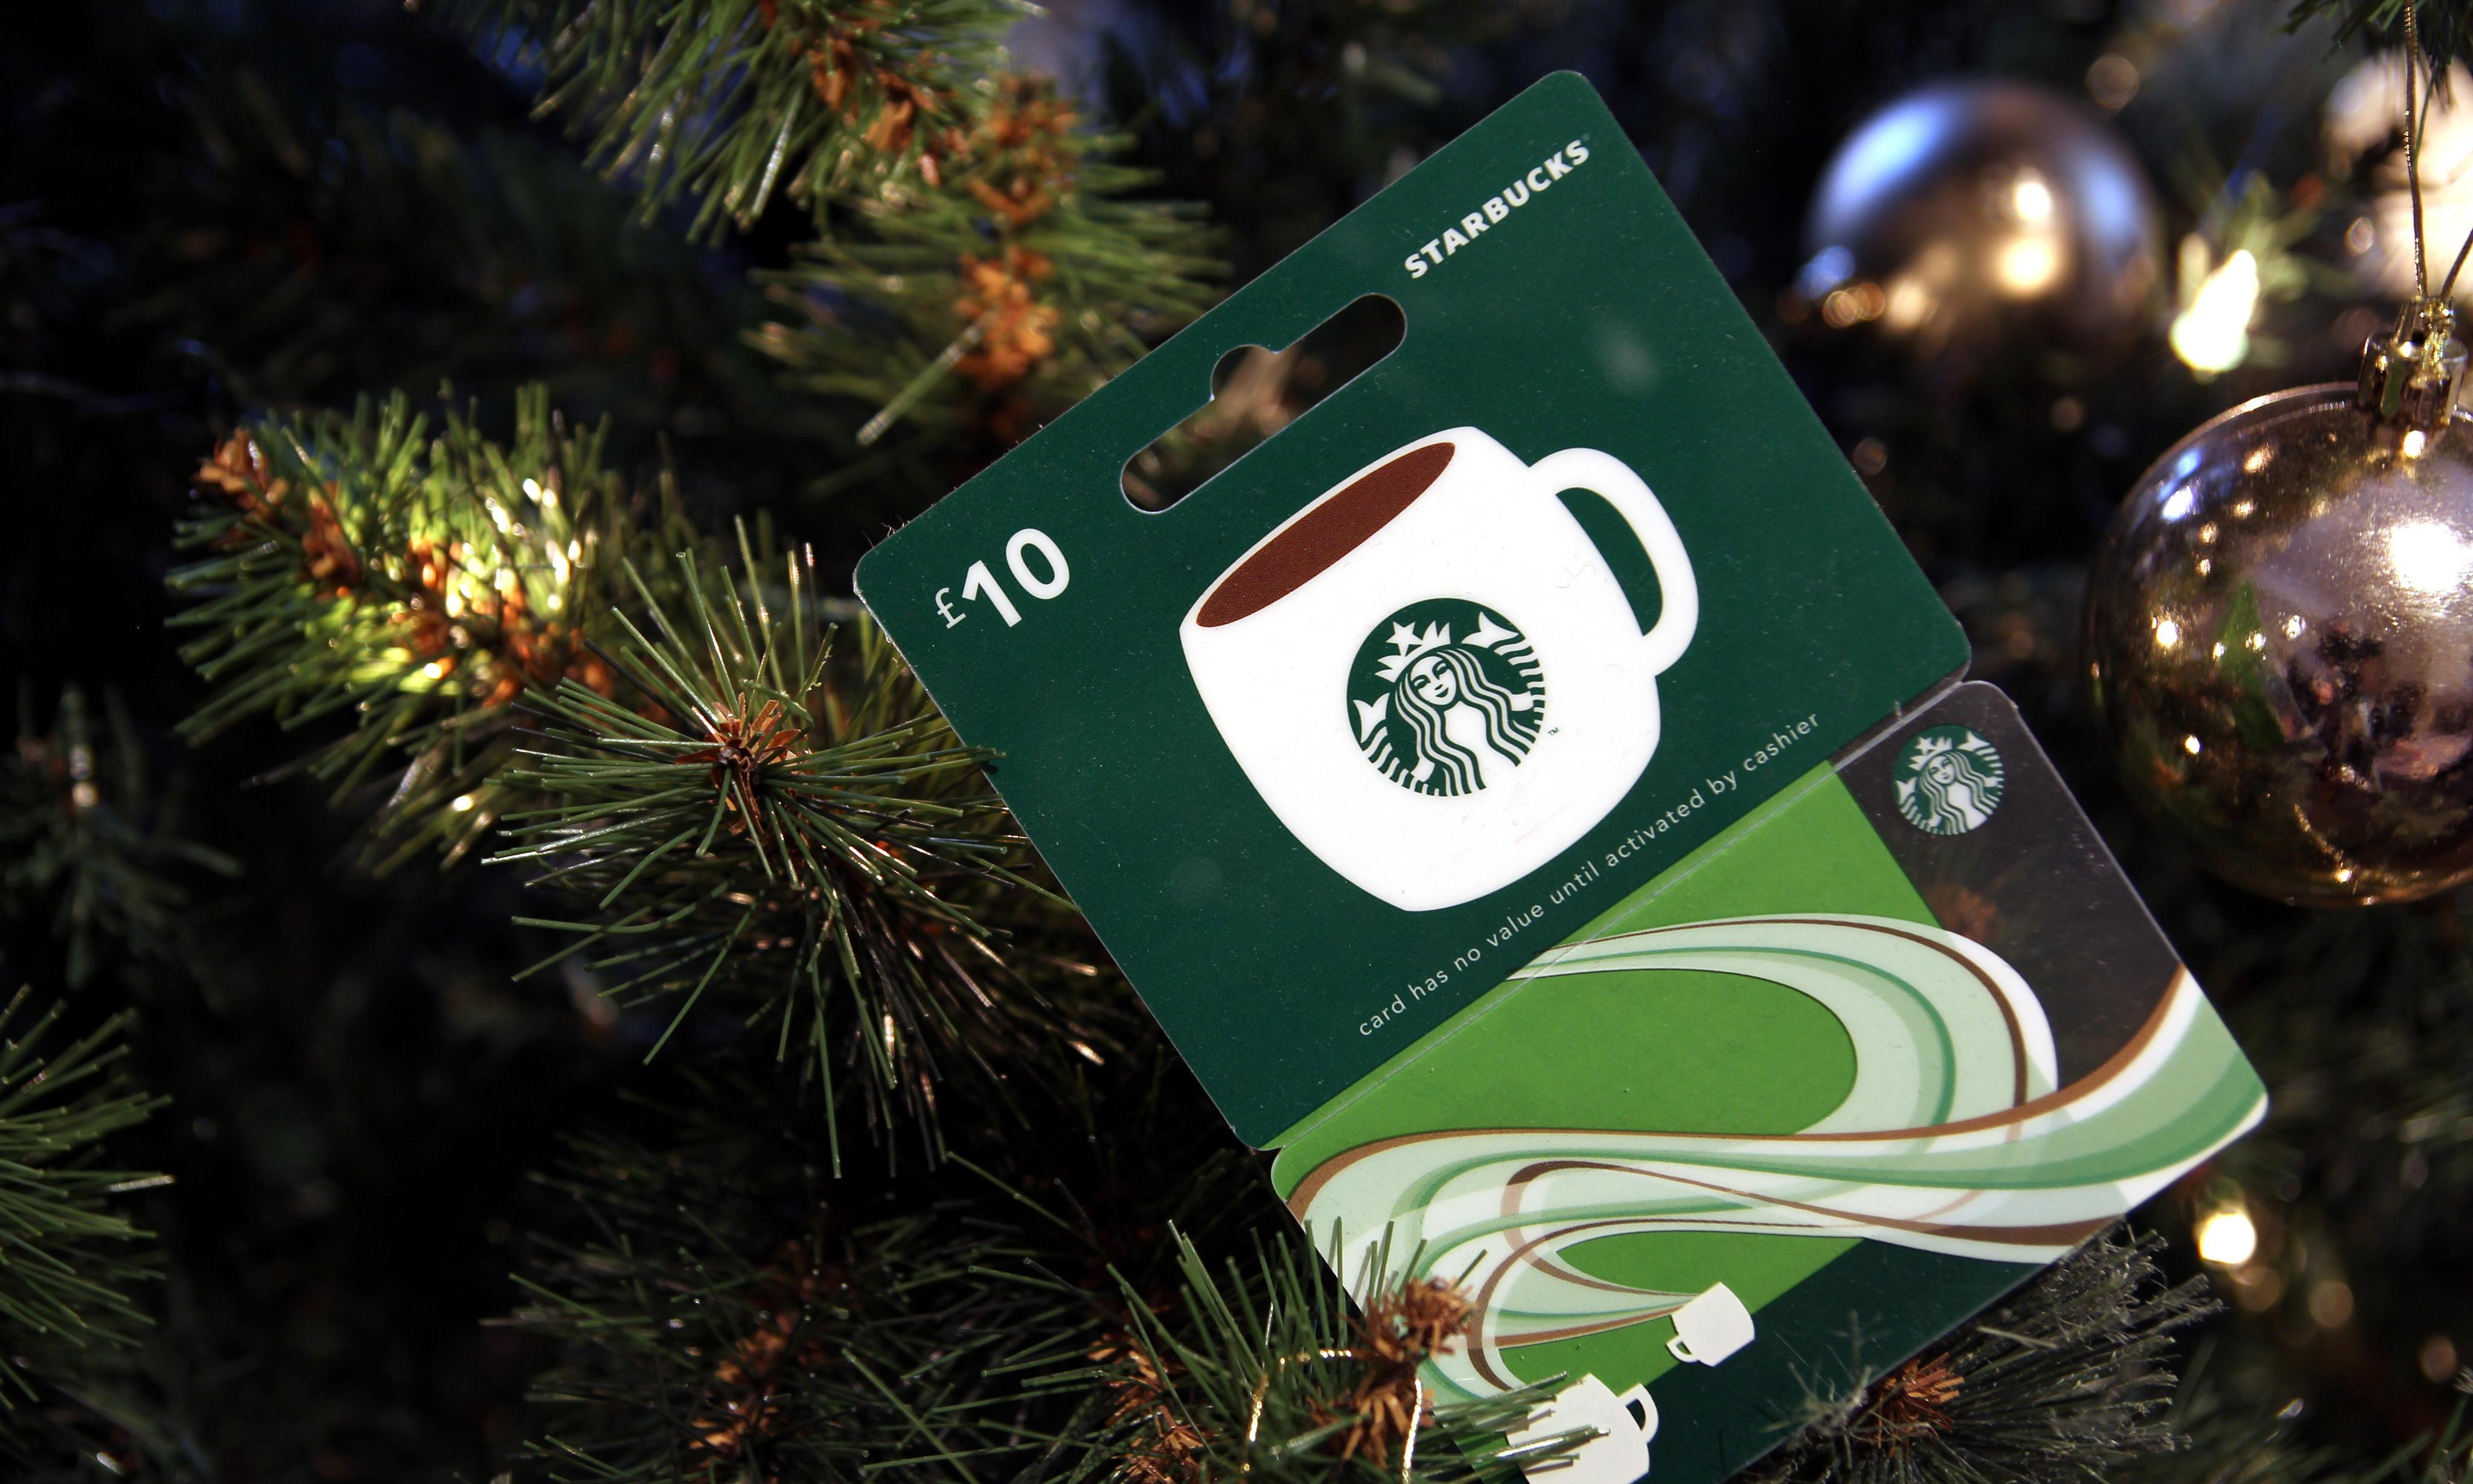 The Starbucks gift card I bought is useless